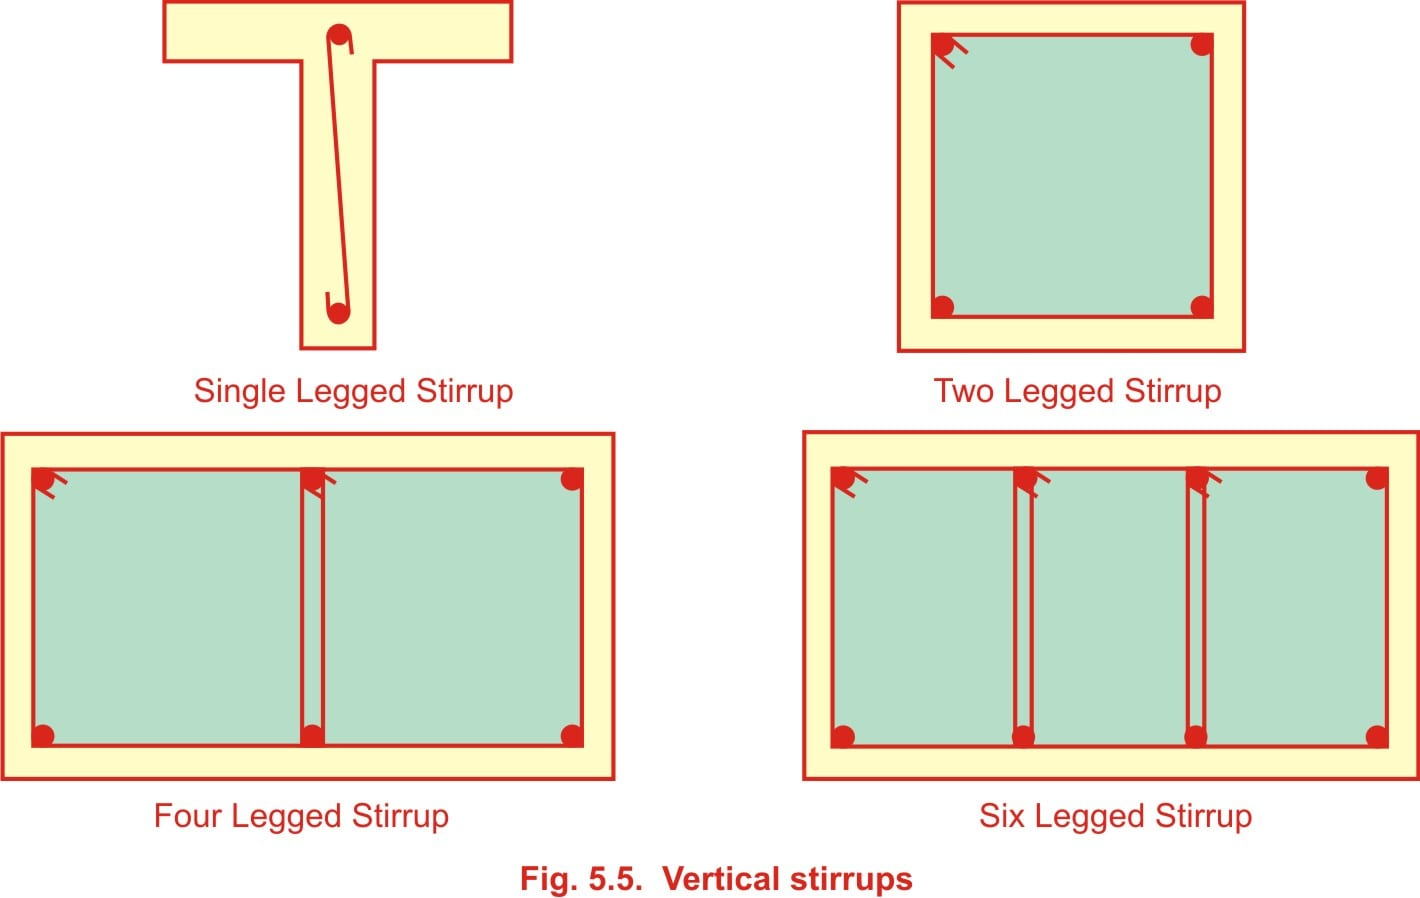 Vertical Stirrups